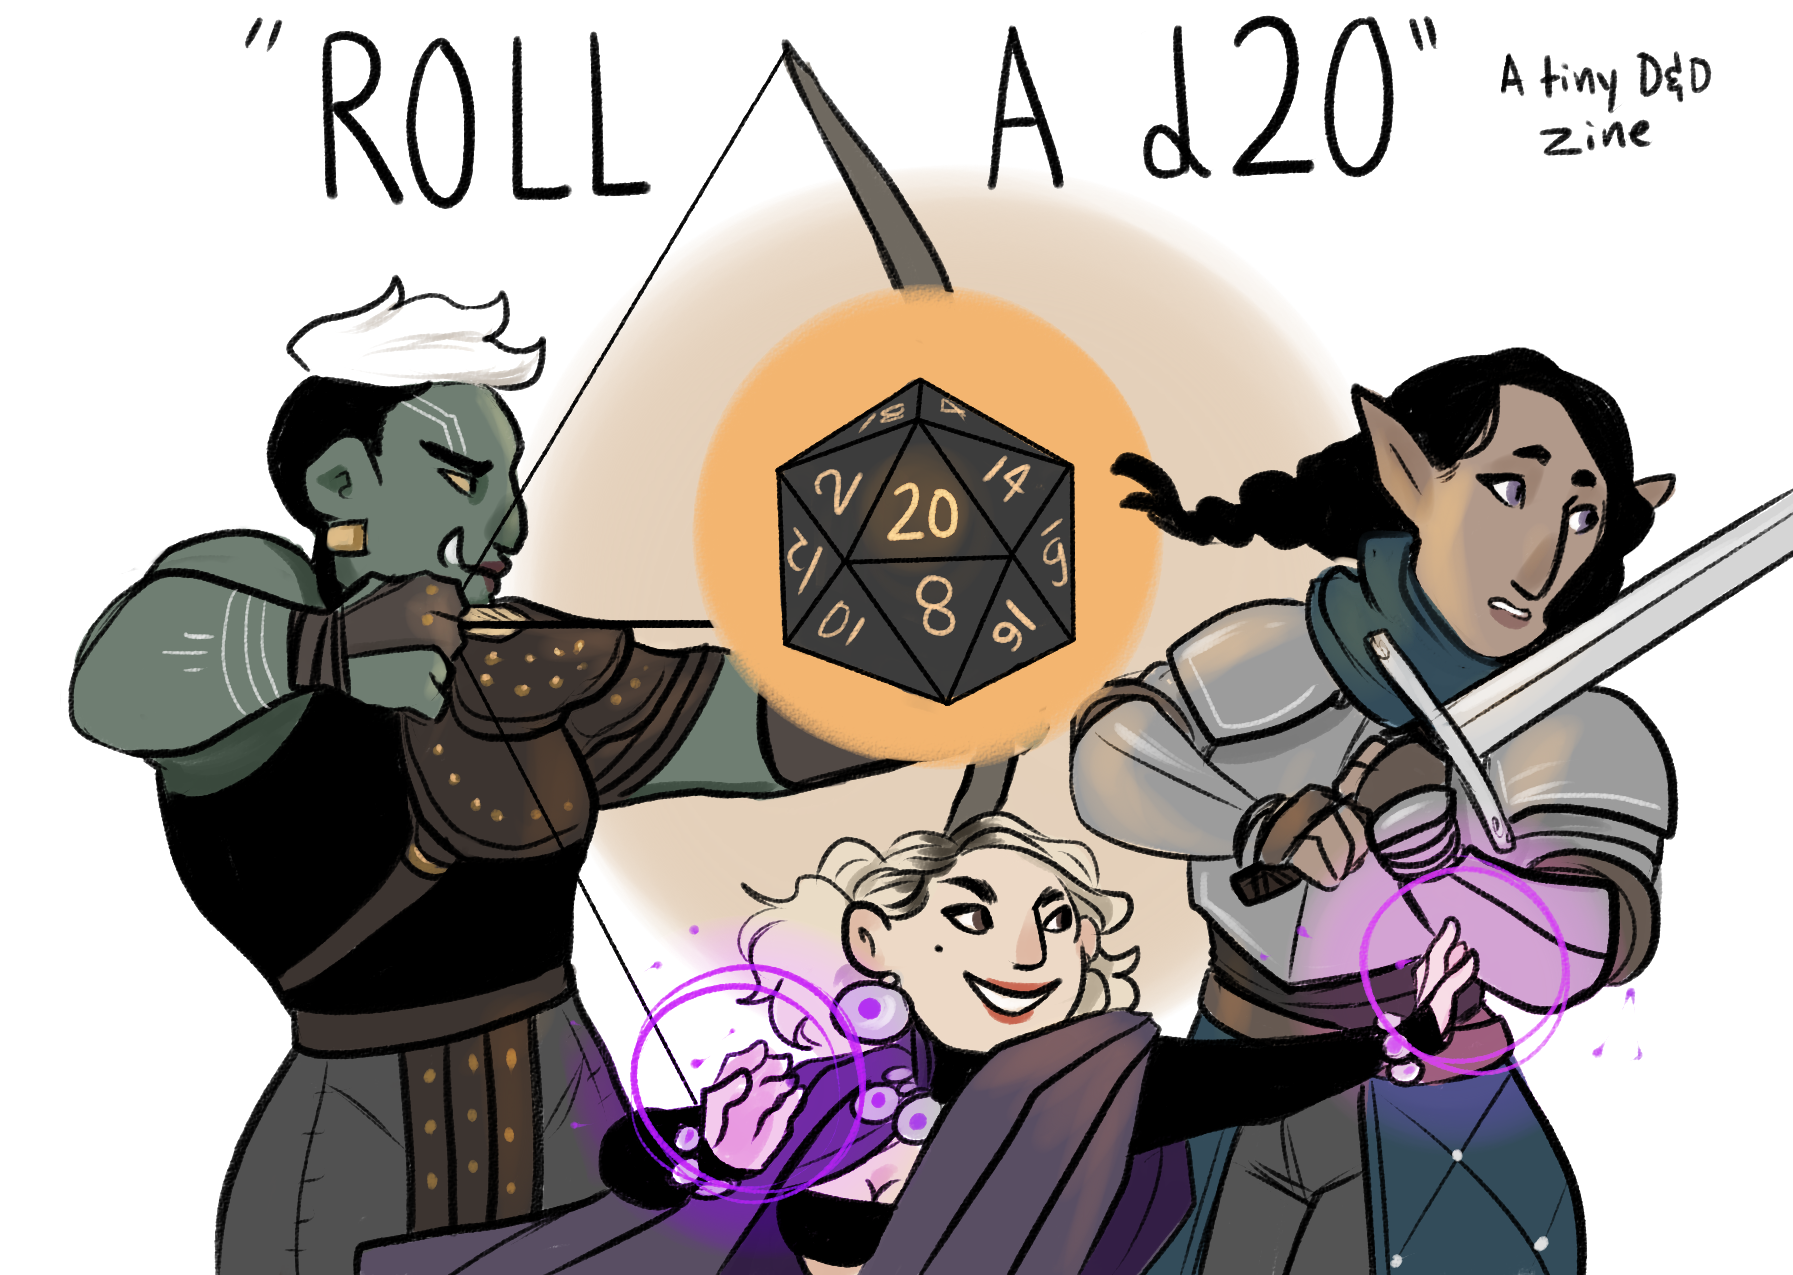 rollad20cover.png